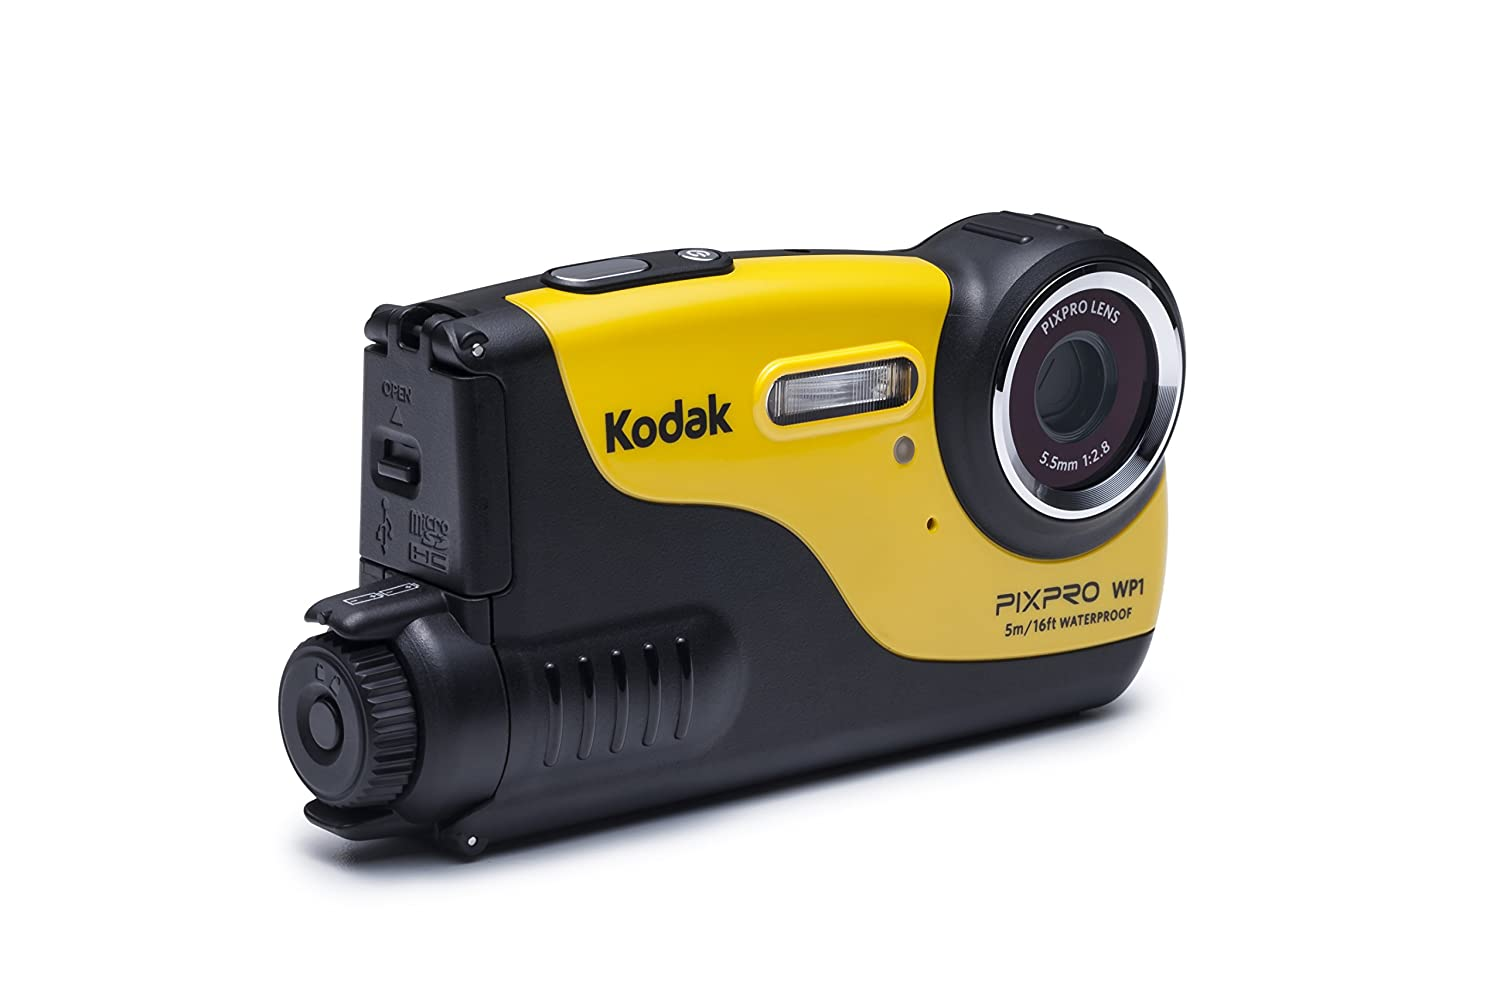 Kodak WP1 cámara para Deporte de acción HD-Ready CCD 16,44 MP 25,4/2,3 mm (1/2.3